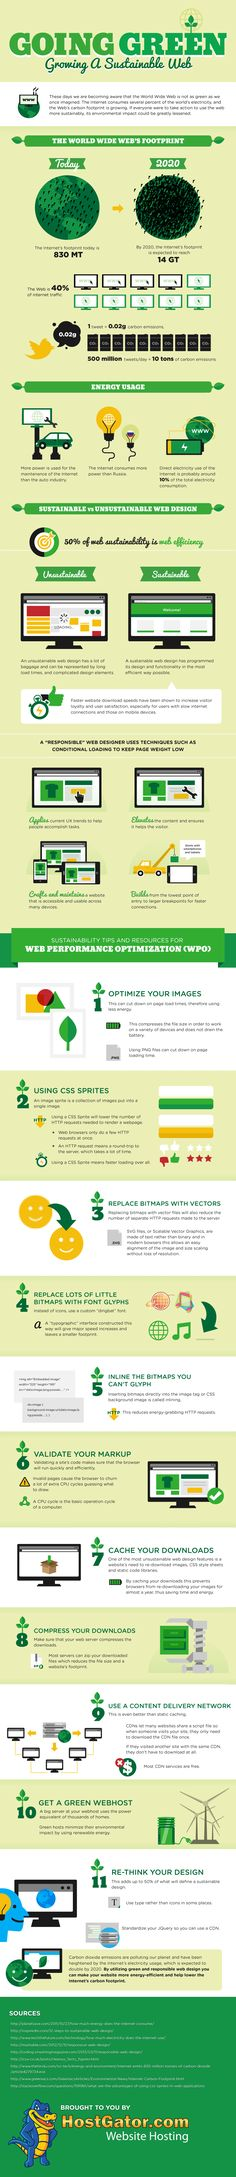 This infographic sheds some light on this issue and even provides some helpful tips on how to minimize your (virtual, but not virtual) carbon footprint.